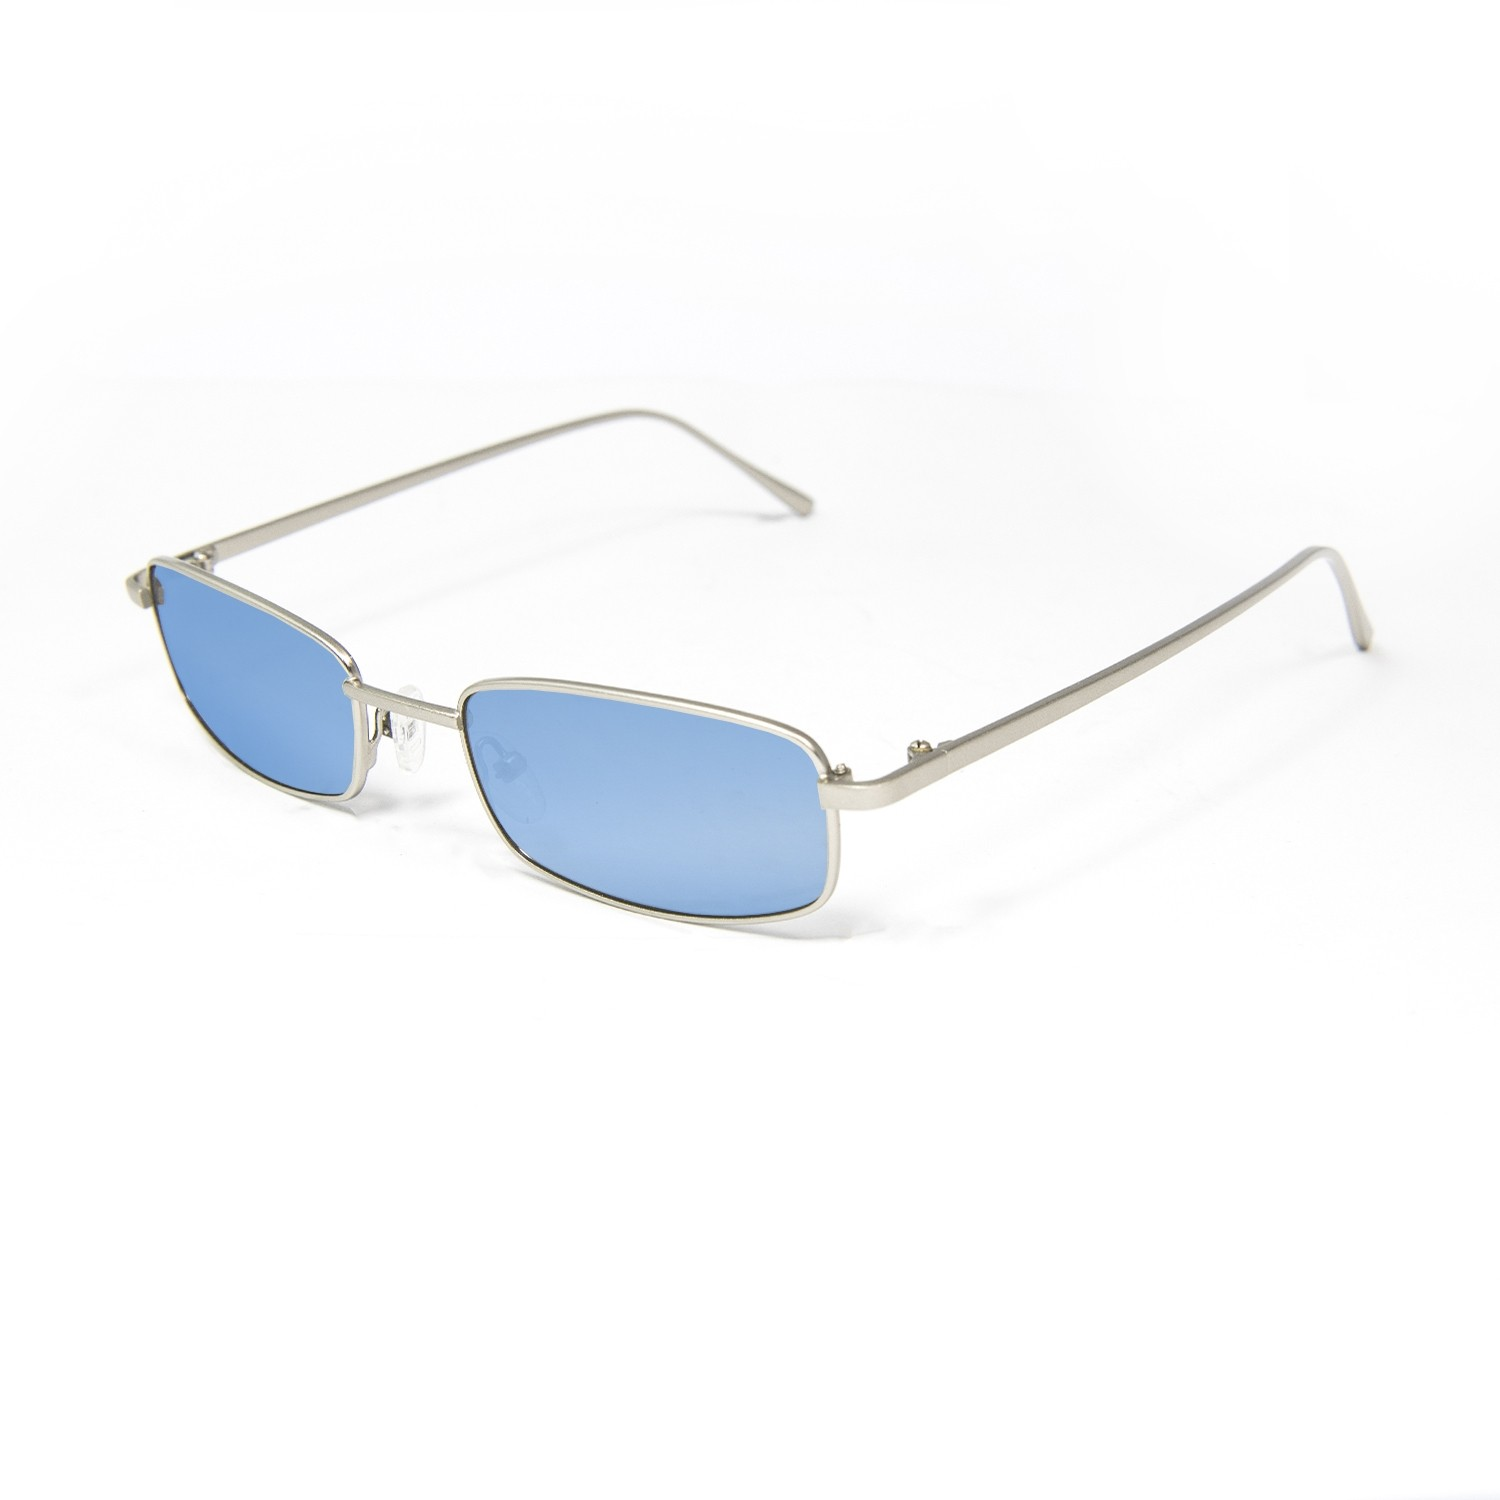 DYLAN silver metal frame with blue light transparent color